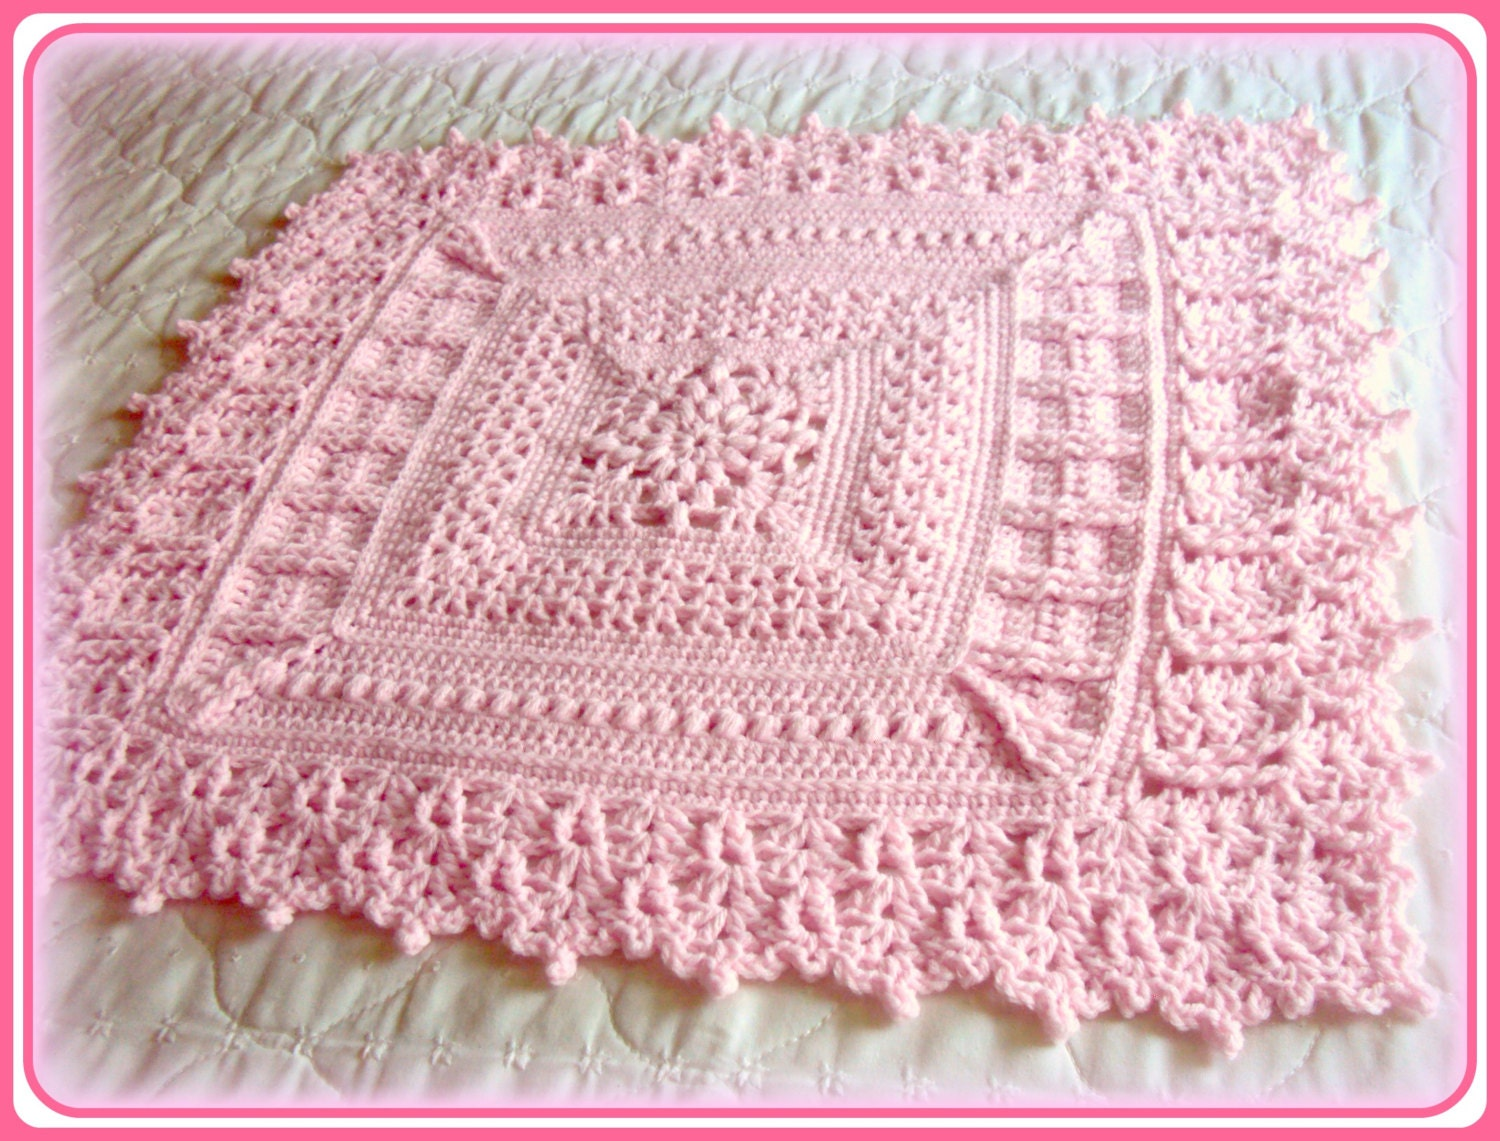 Crocheting Baby Blanket : crochet flower baby blanket pattern